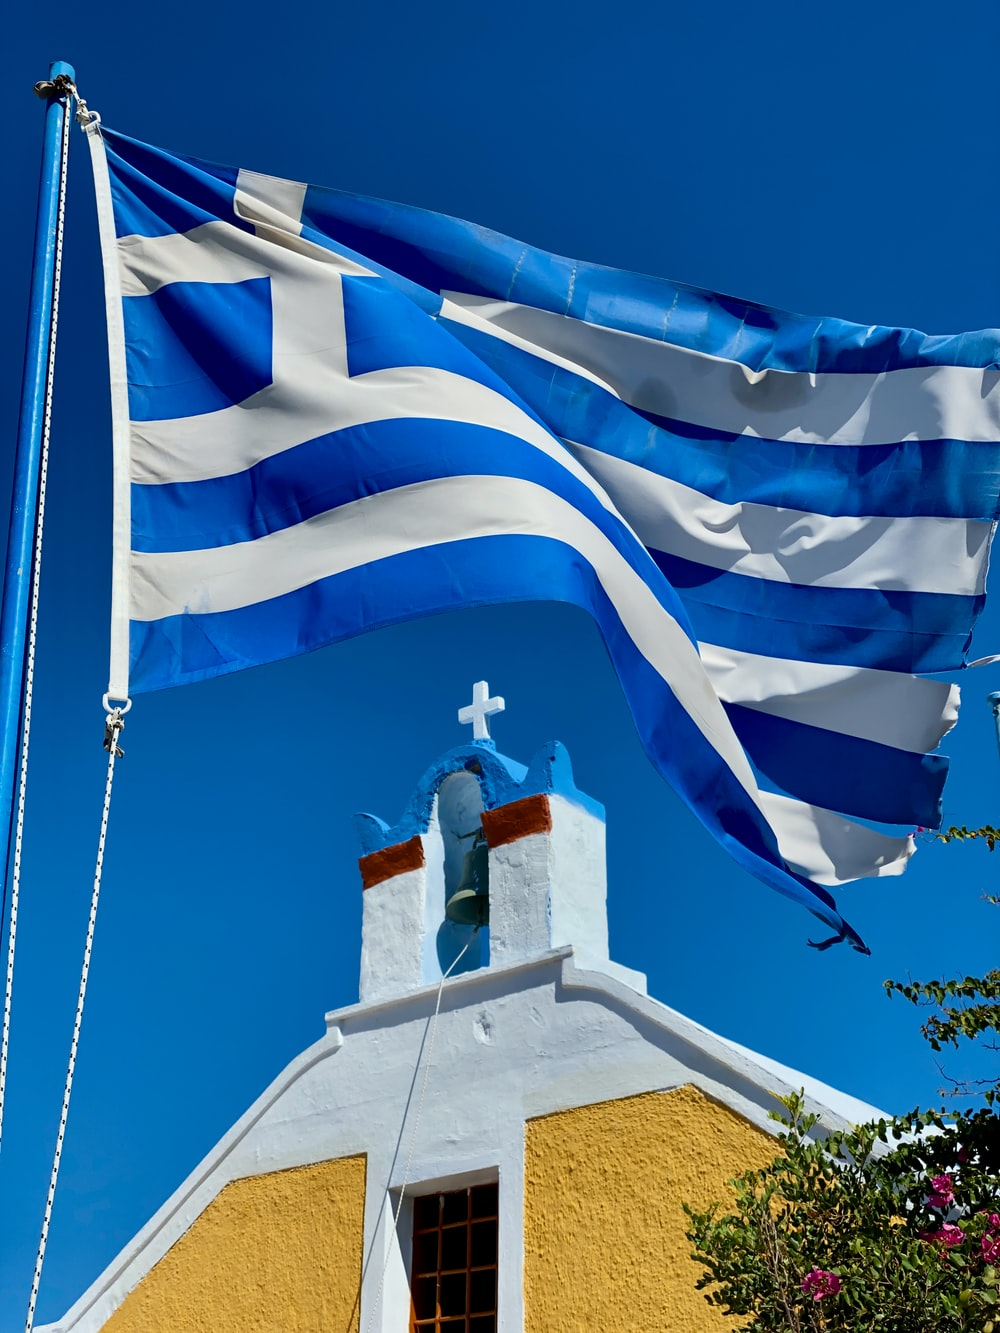 raised Greece flag near cathedral during daytime